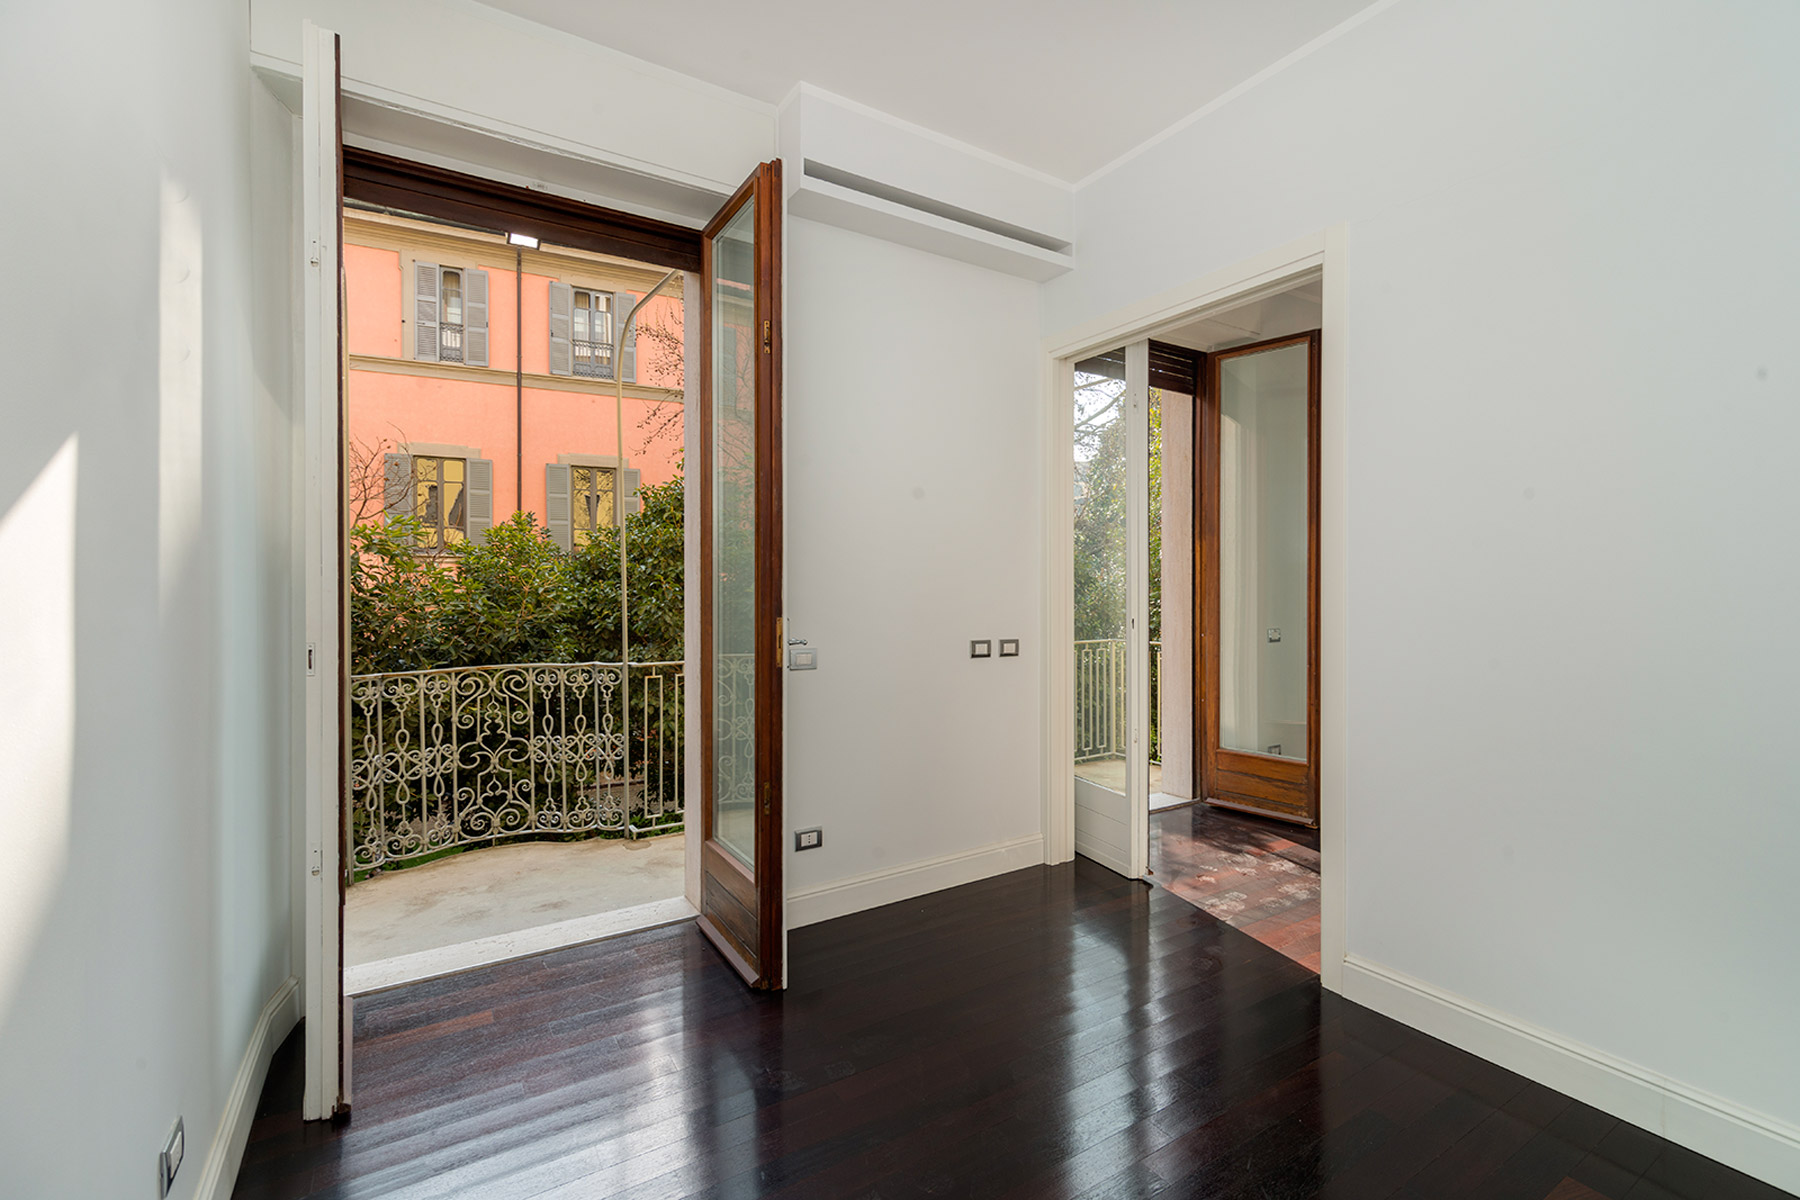 Additional photo for property listing at Elegant apartment near the Opera Theatre Alla Scala Via Manzoni Milano, Milan 20121 Italy